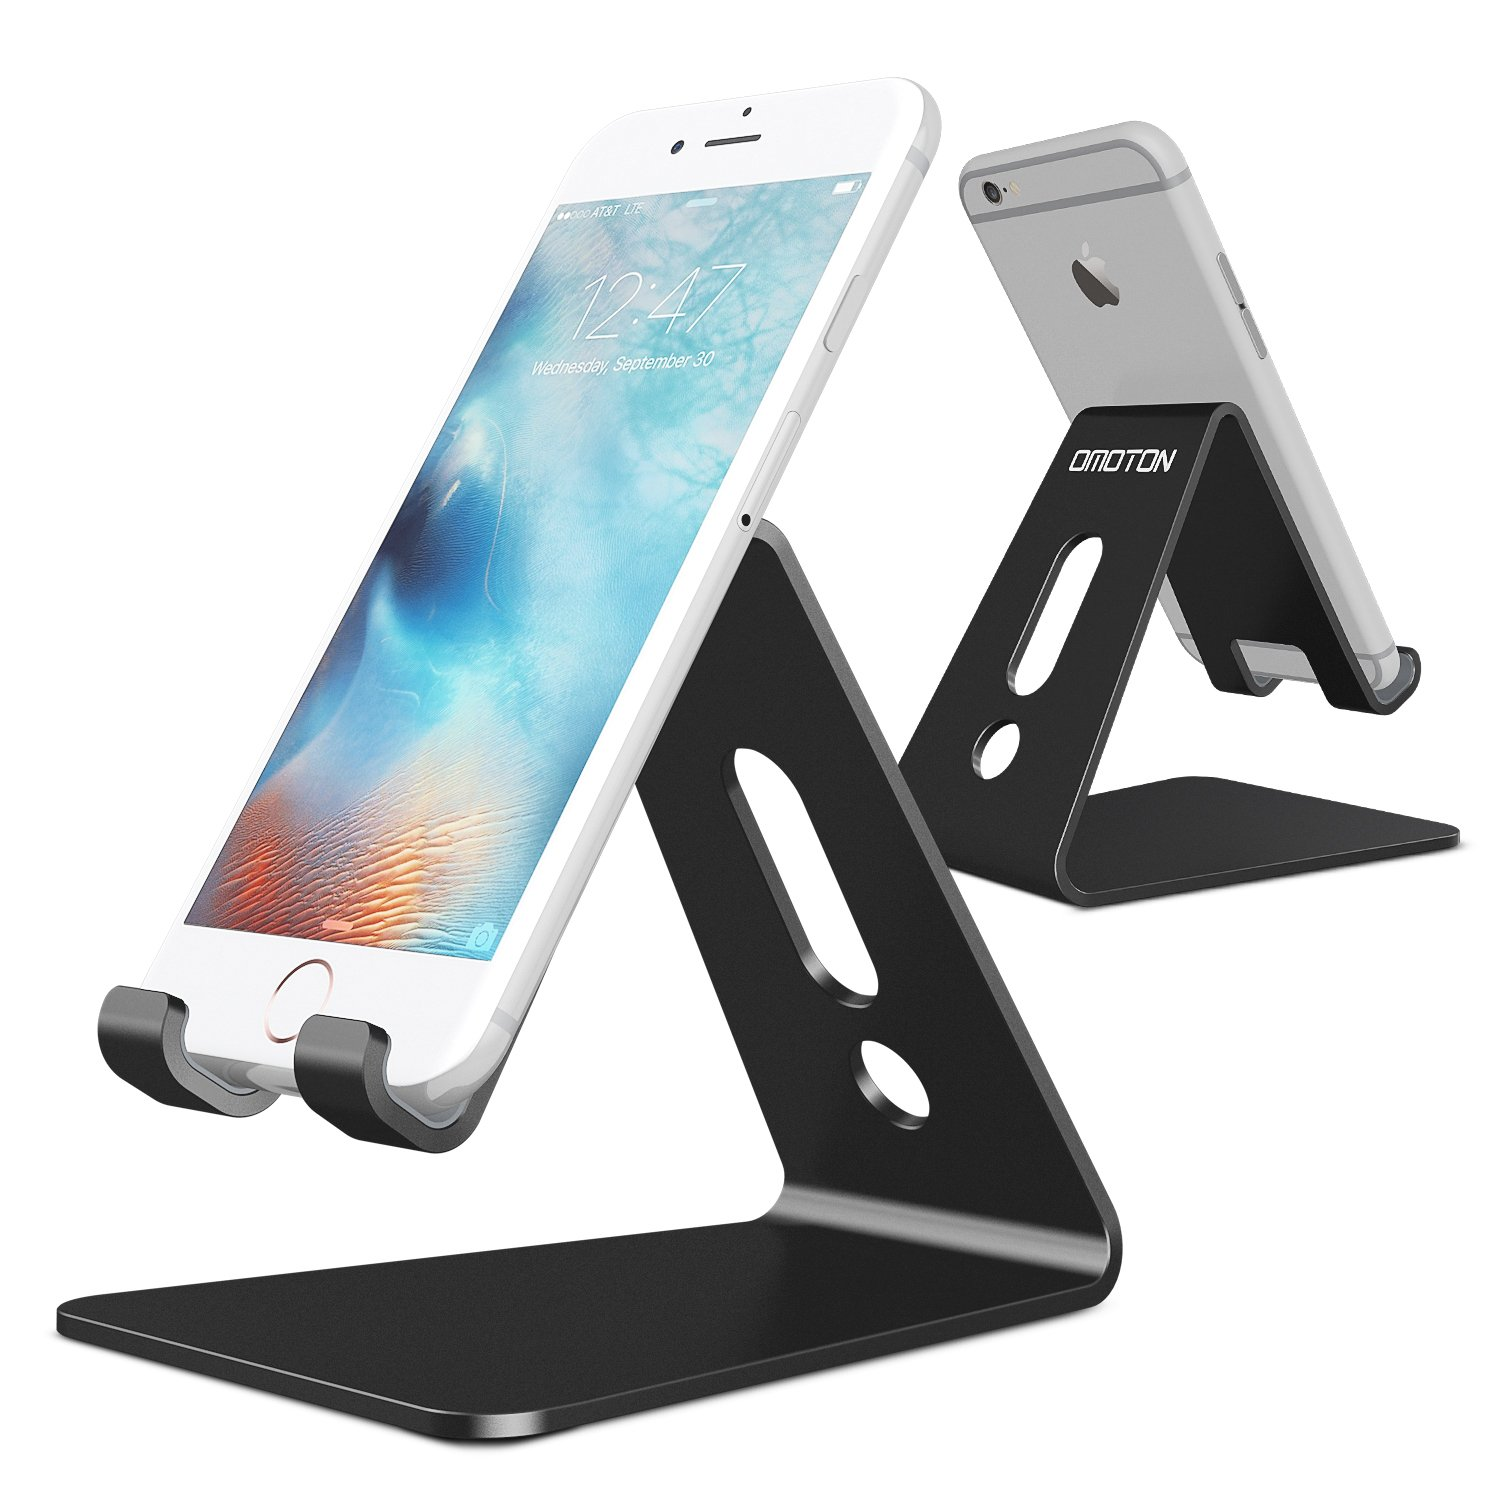 [Updated Solid Version] OMOTON Desktop Cell Phone Stand Tablet Stand, Advanced 4mm Thickness Aluminum Stand Holder Mobile Phone Tablet (up to 10.1 inch), Black